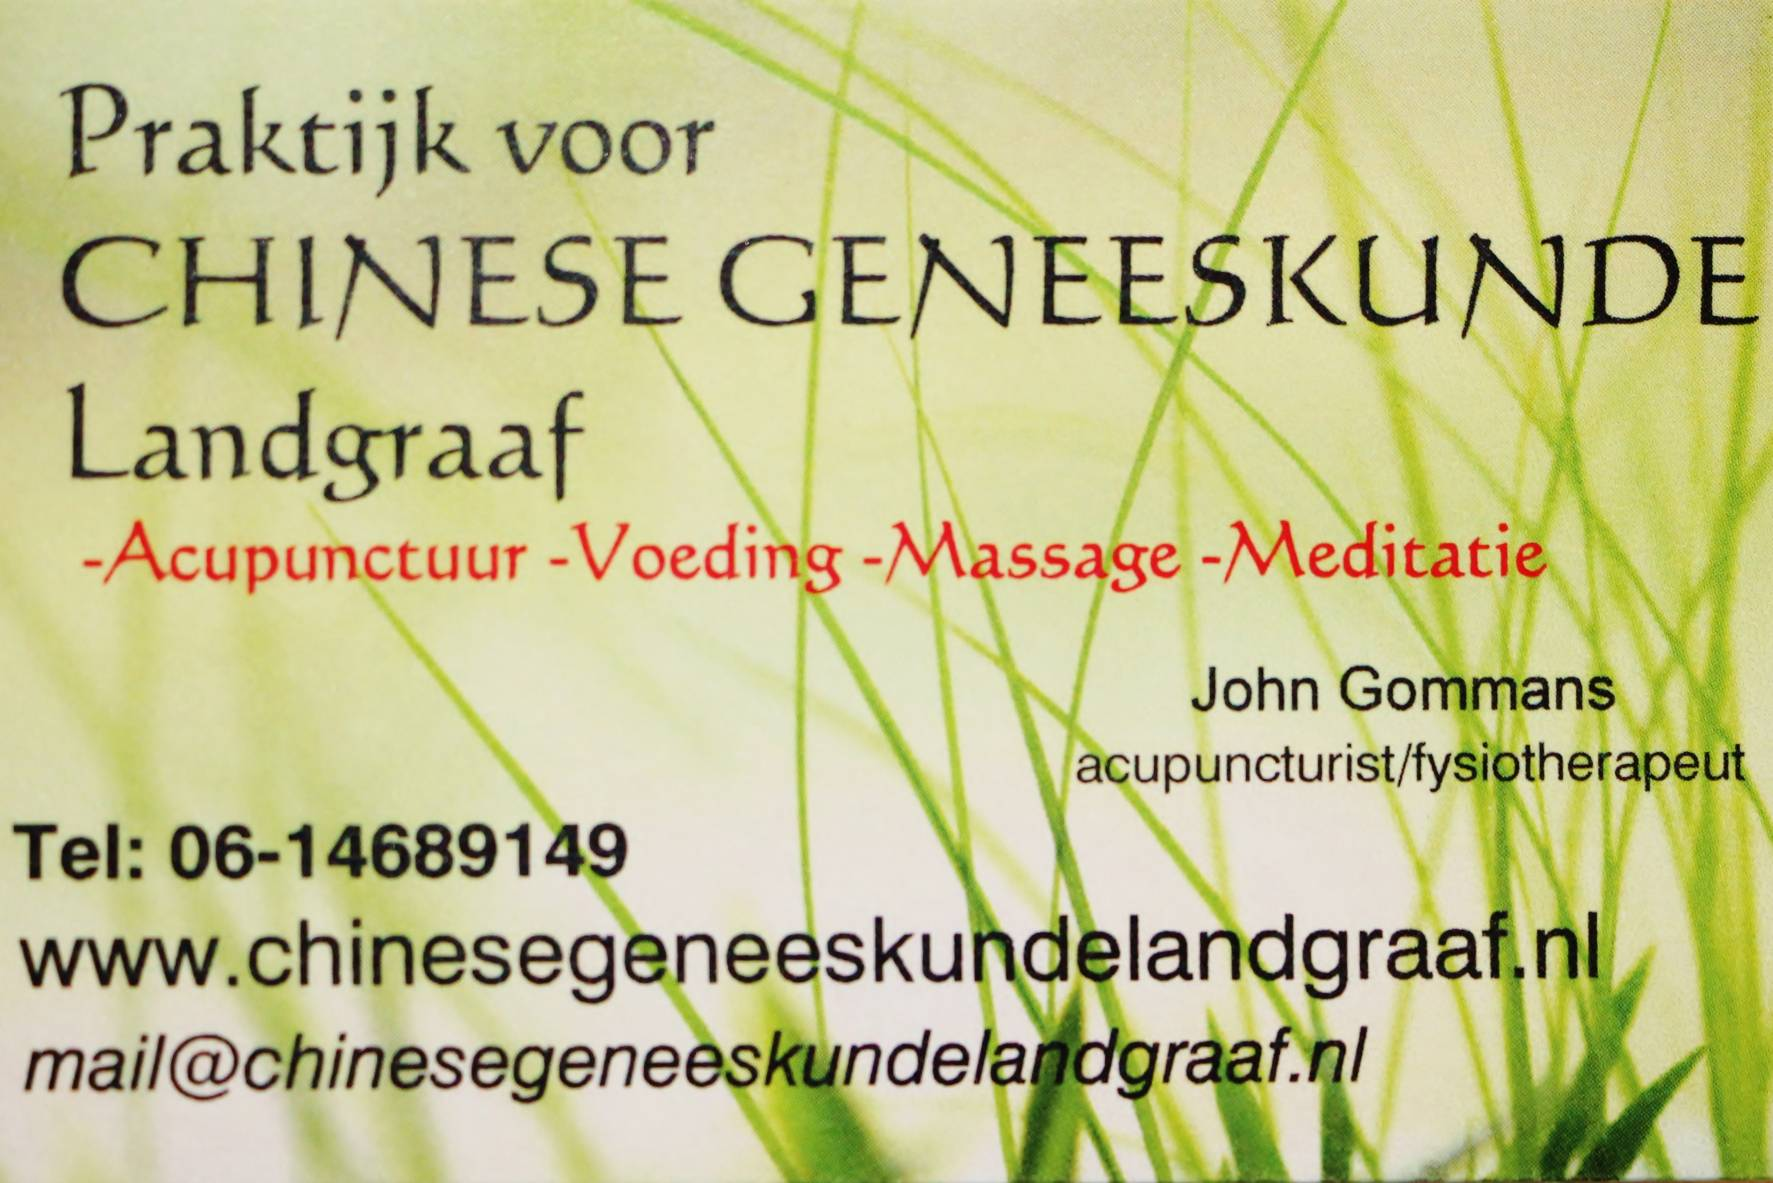 ervaren acupuncturist in Limburg